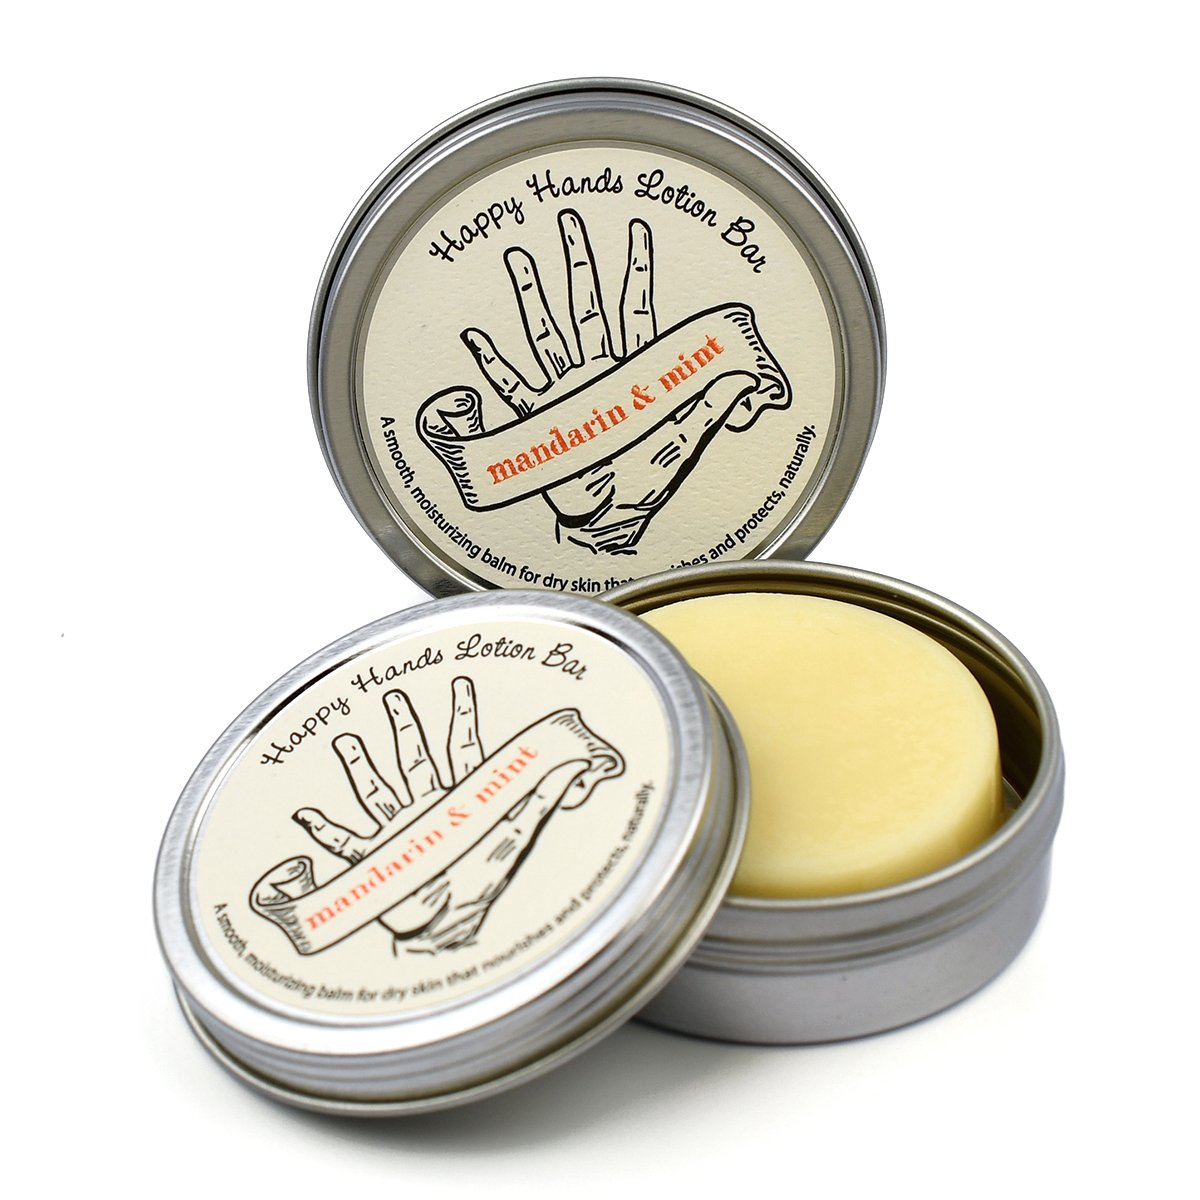 Mint Citrus with Mandarin Happy Hands Natural Beeswax & Shea Butter Solid Lotion Bar Pair. Keeps Skin Moisturized & Protected, Great Idea for Women & Men, Compact & Concentrated by Seattle Sundries